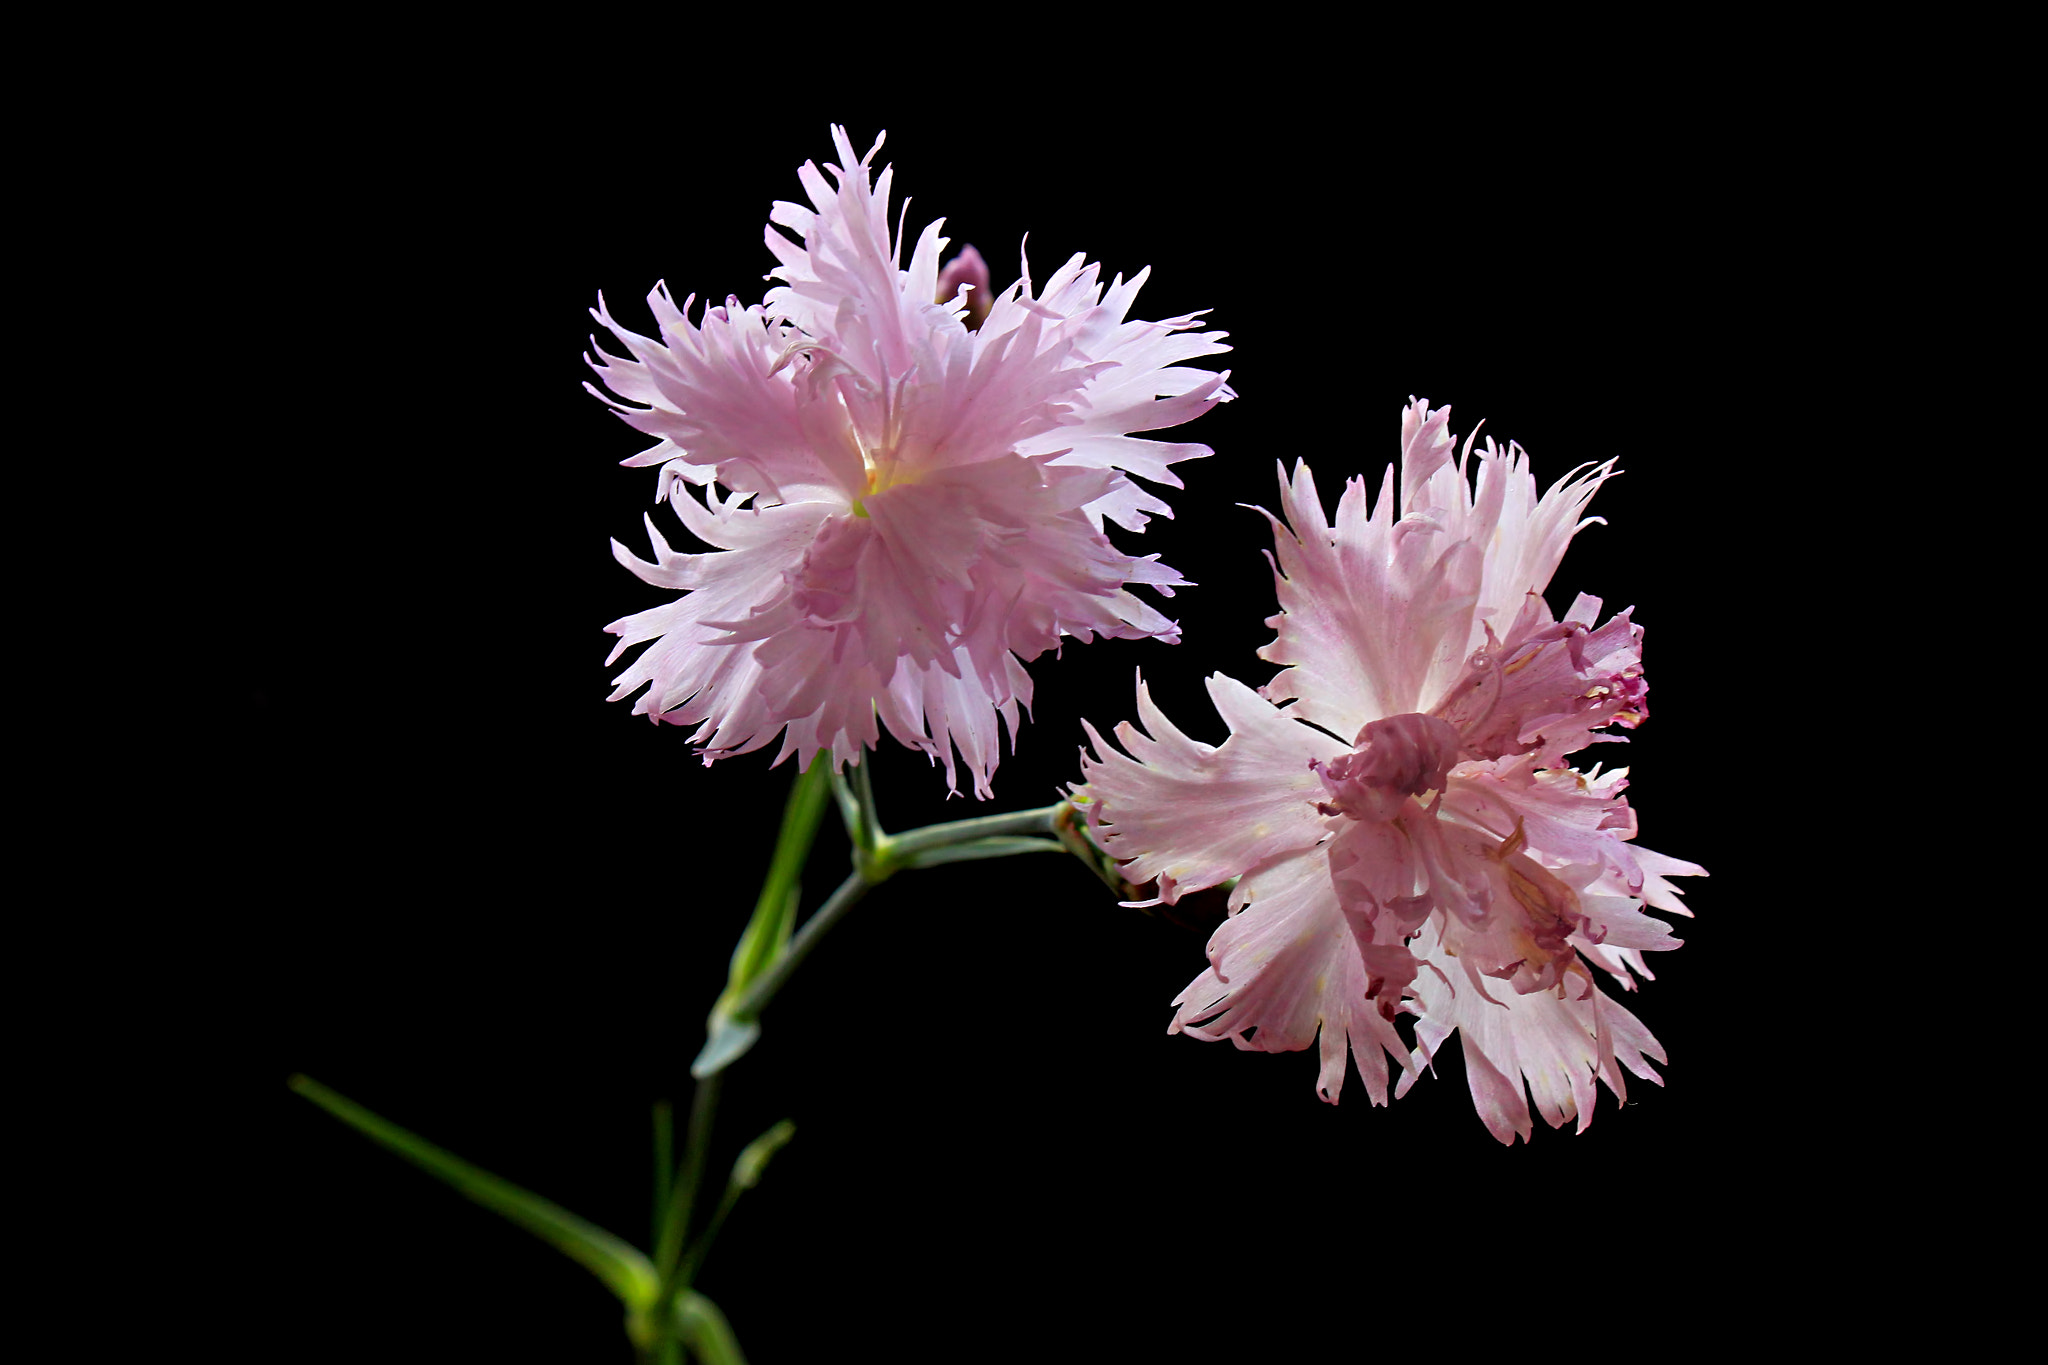 Photograph Carnation by Vendenis   on 500px